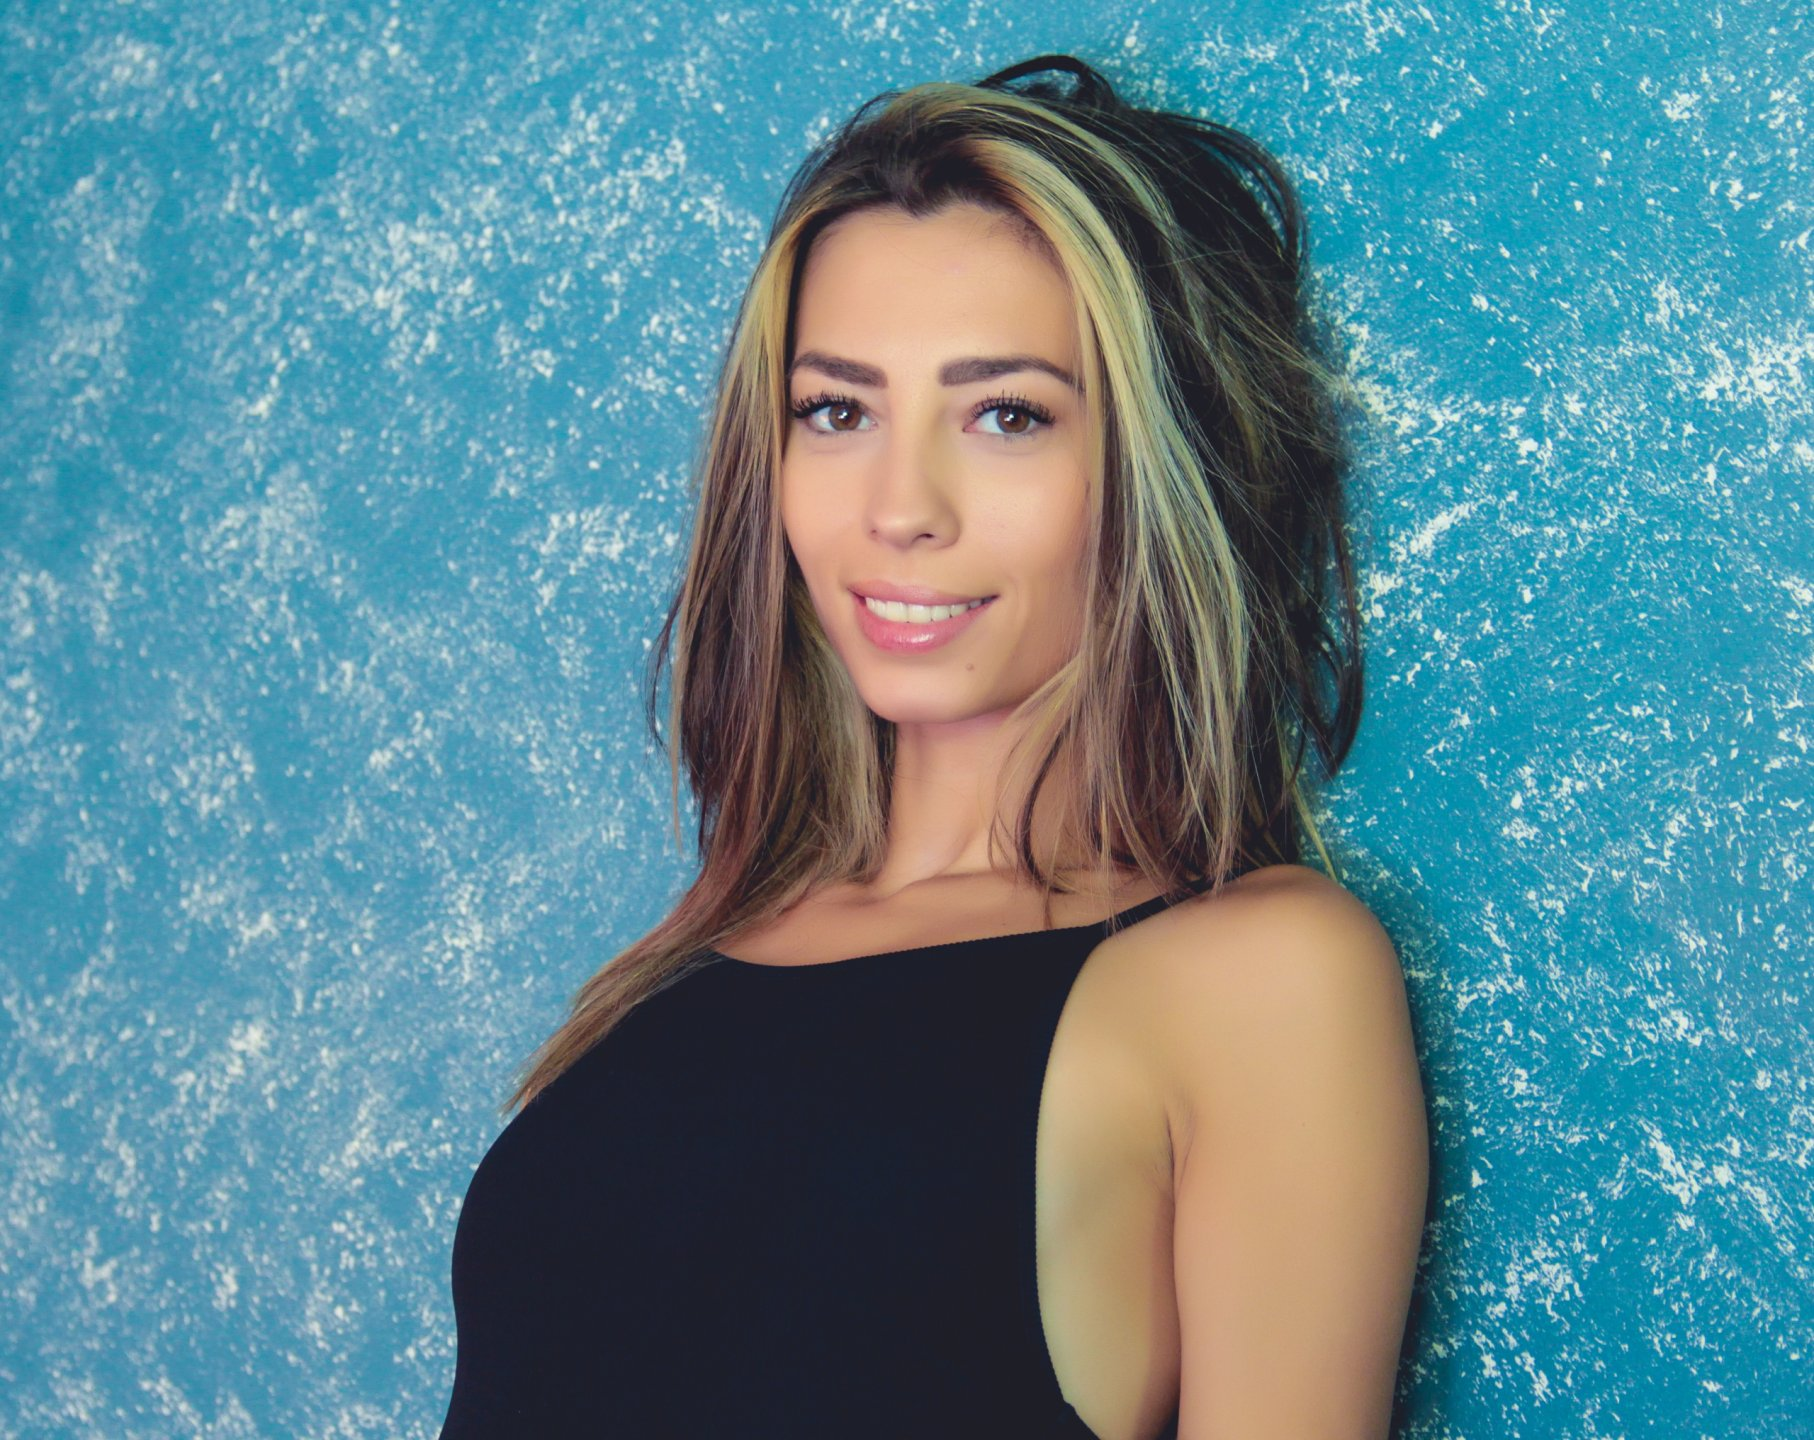 Live private of PoxyVibe, this chocolate like hair shaved